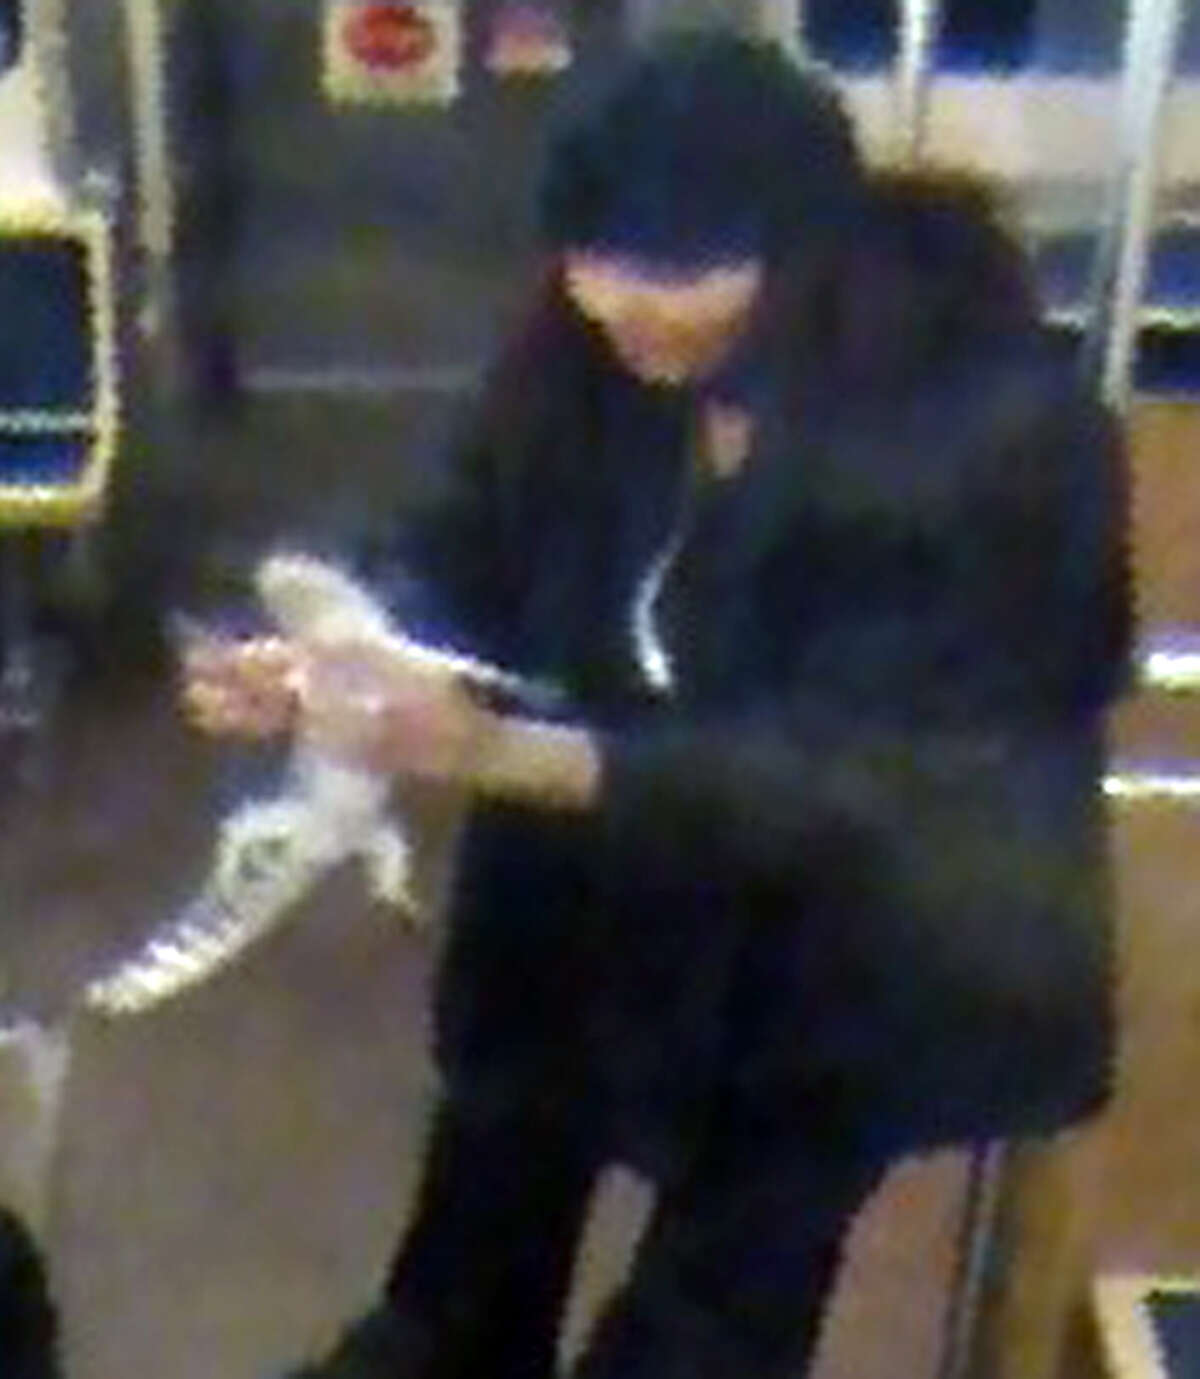 This security camera image provided by the Chicago Transit Authority on Wednesday, Nov. 13, 2013 shows a woman with a two-foot-long alligator aboard a CTA Blue Line train early in the morning of Nov. 1, 2013 in Chicago. Authorities are searching for the woman, who they believe discarded the reptile at O'Hare International Airport. The two-foot-long alligator was captured hours later after a maintenance worker found it under an escalator in a baggage claim area.